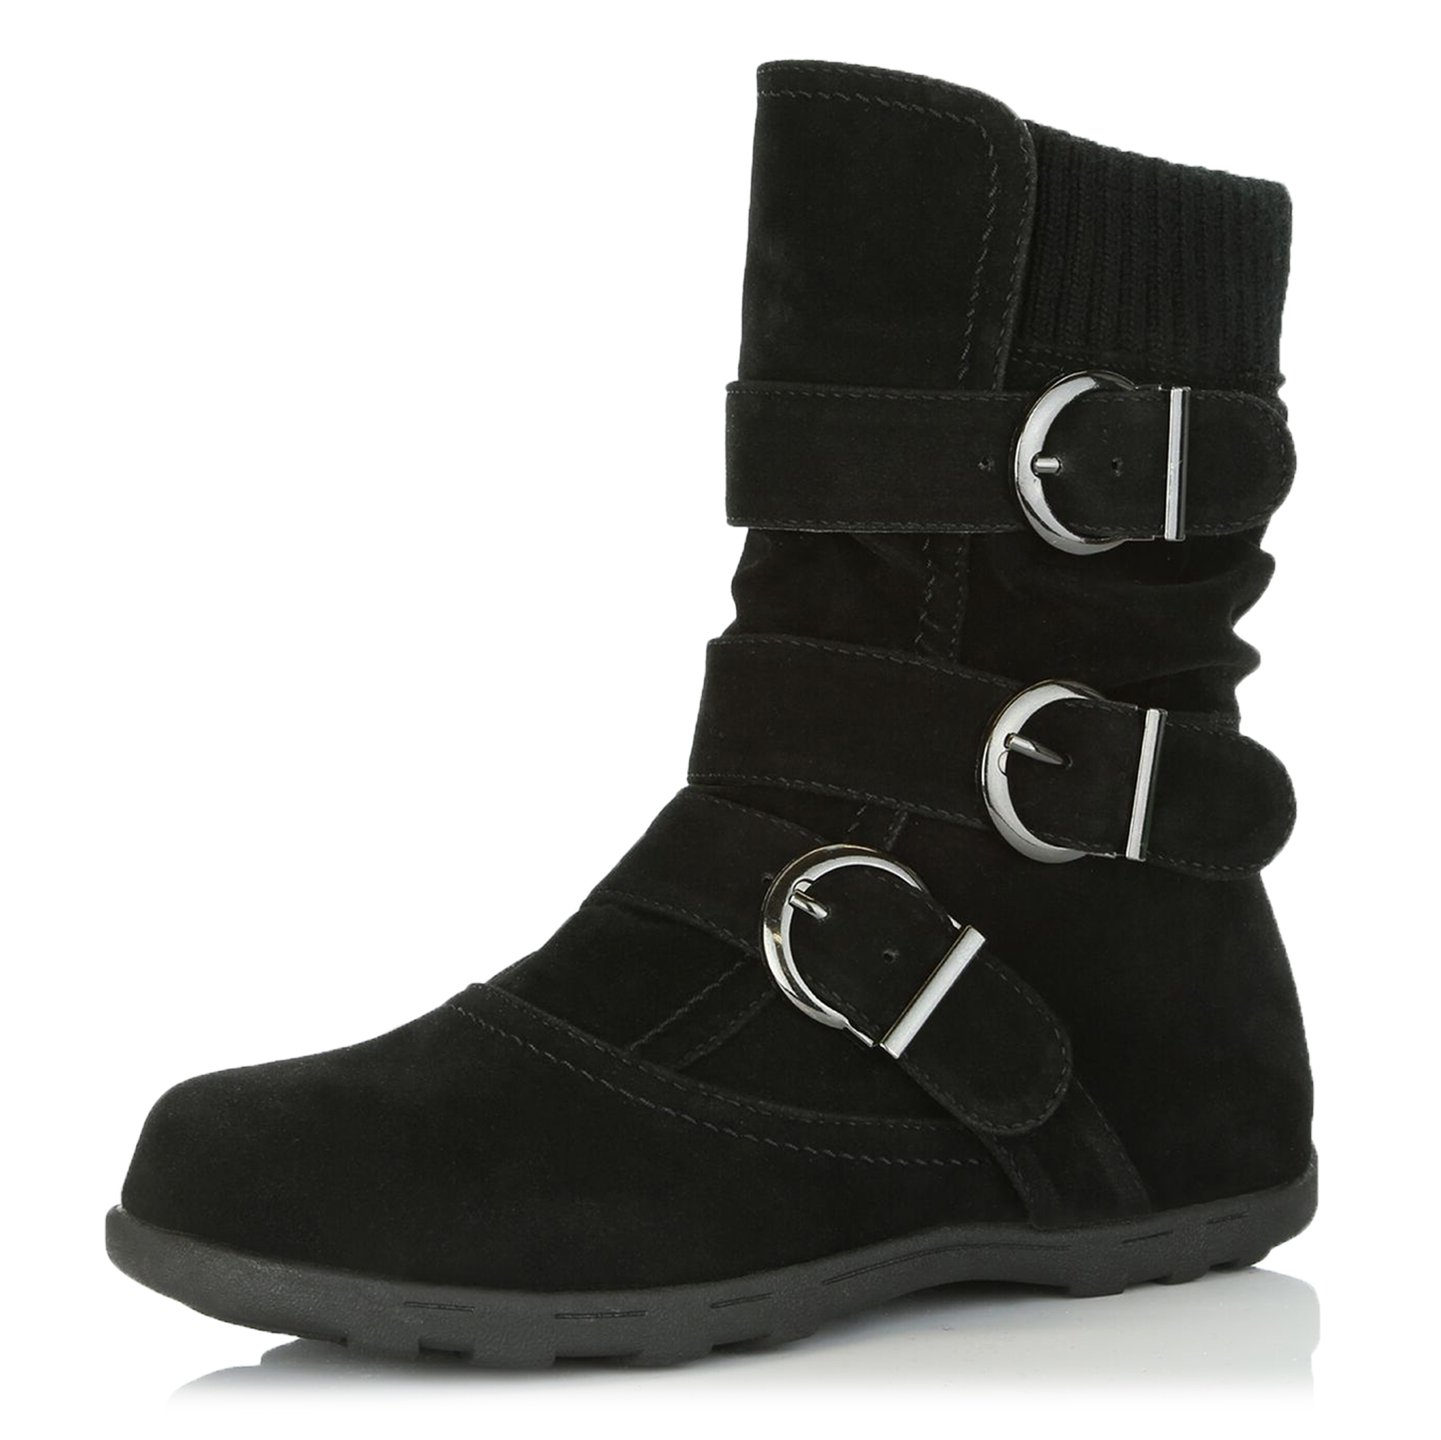 DailyShoes Women's Winter Snow Boots with Buckles Durable Traction Warm Cozy Ankle Mid Calf Slouch Perfect for Fall and Snow Seasons, Black SV, 8 B(M) US